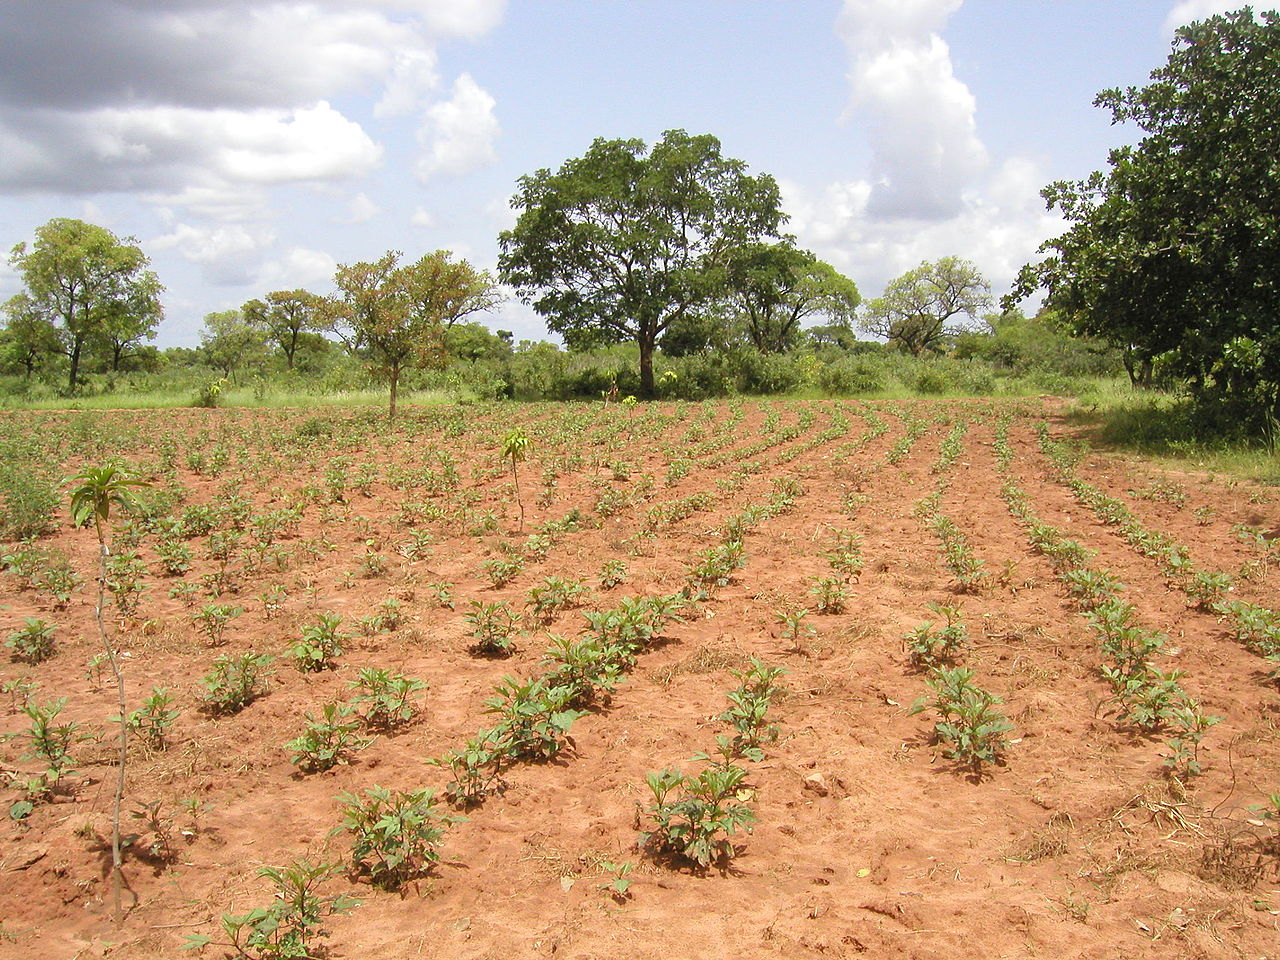 Reforestation attempts only in specific places